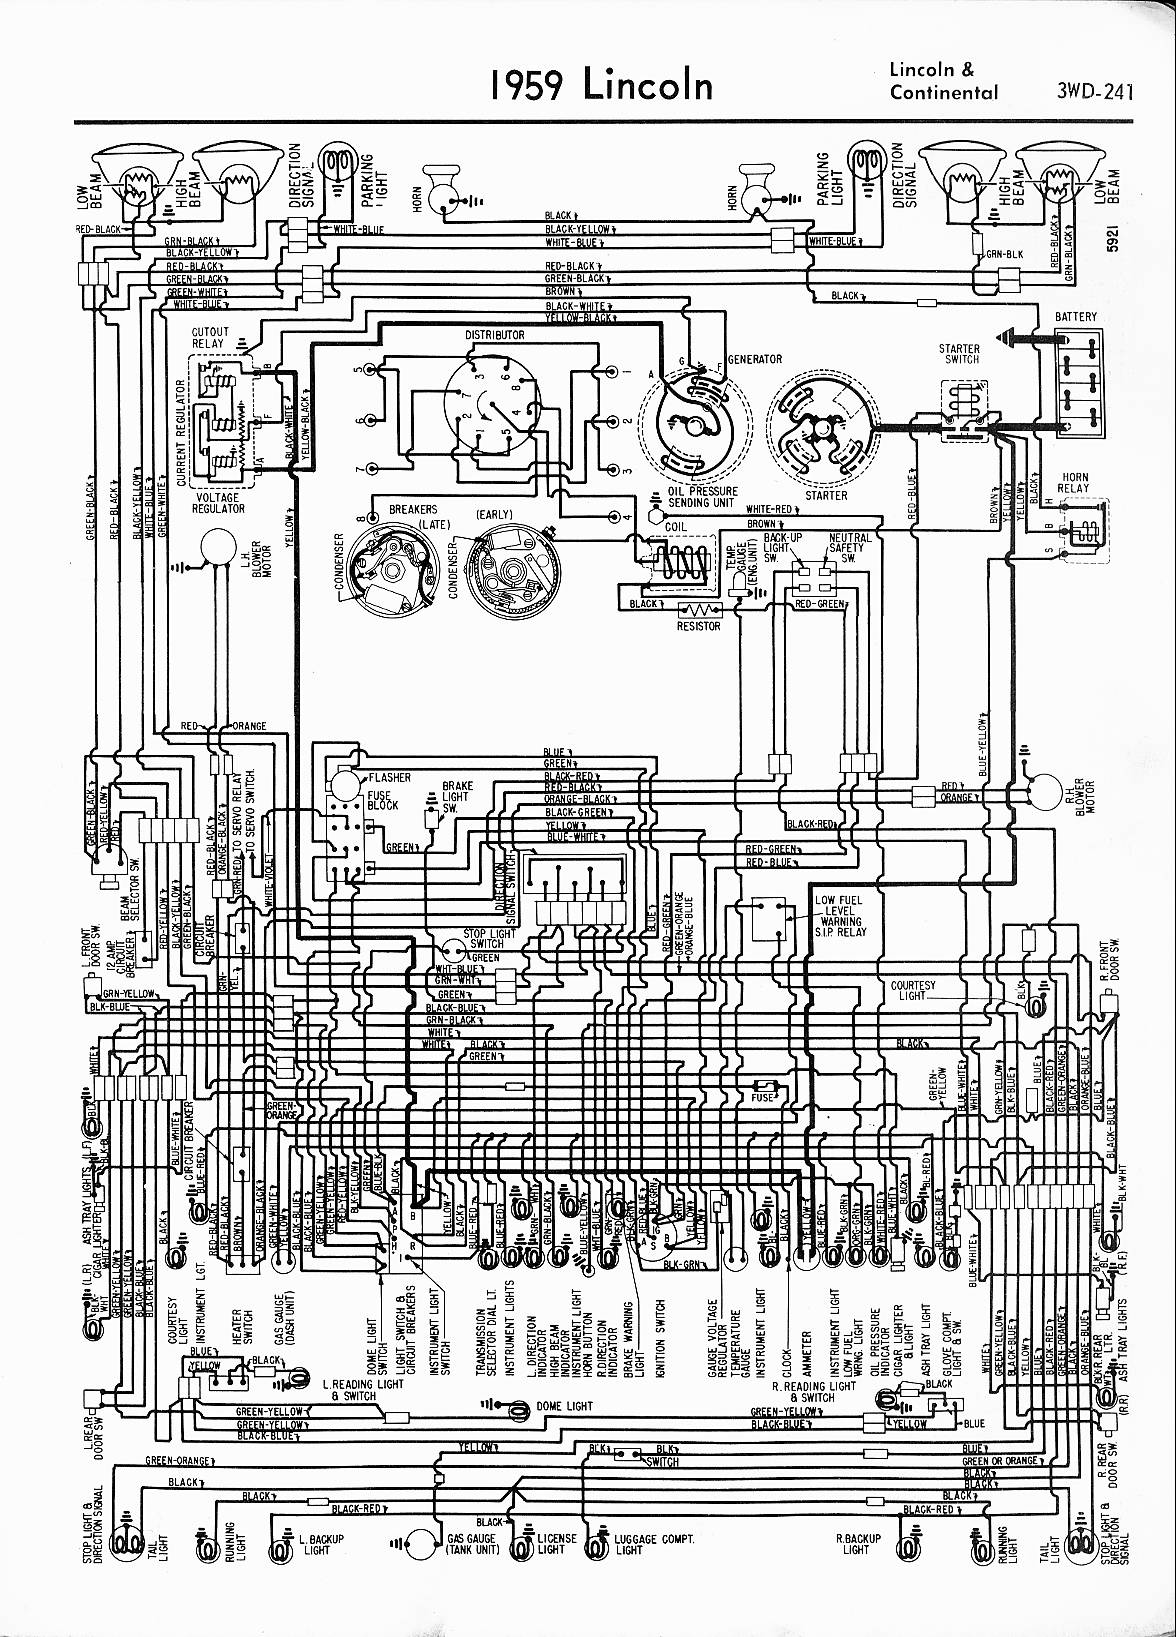 wiring diagram for 1966 lincoln continental house wiring diagram rh maxturner co  1966 lincoln continental convertible top wiring diagram